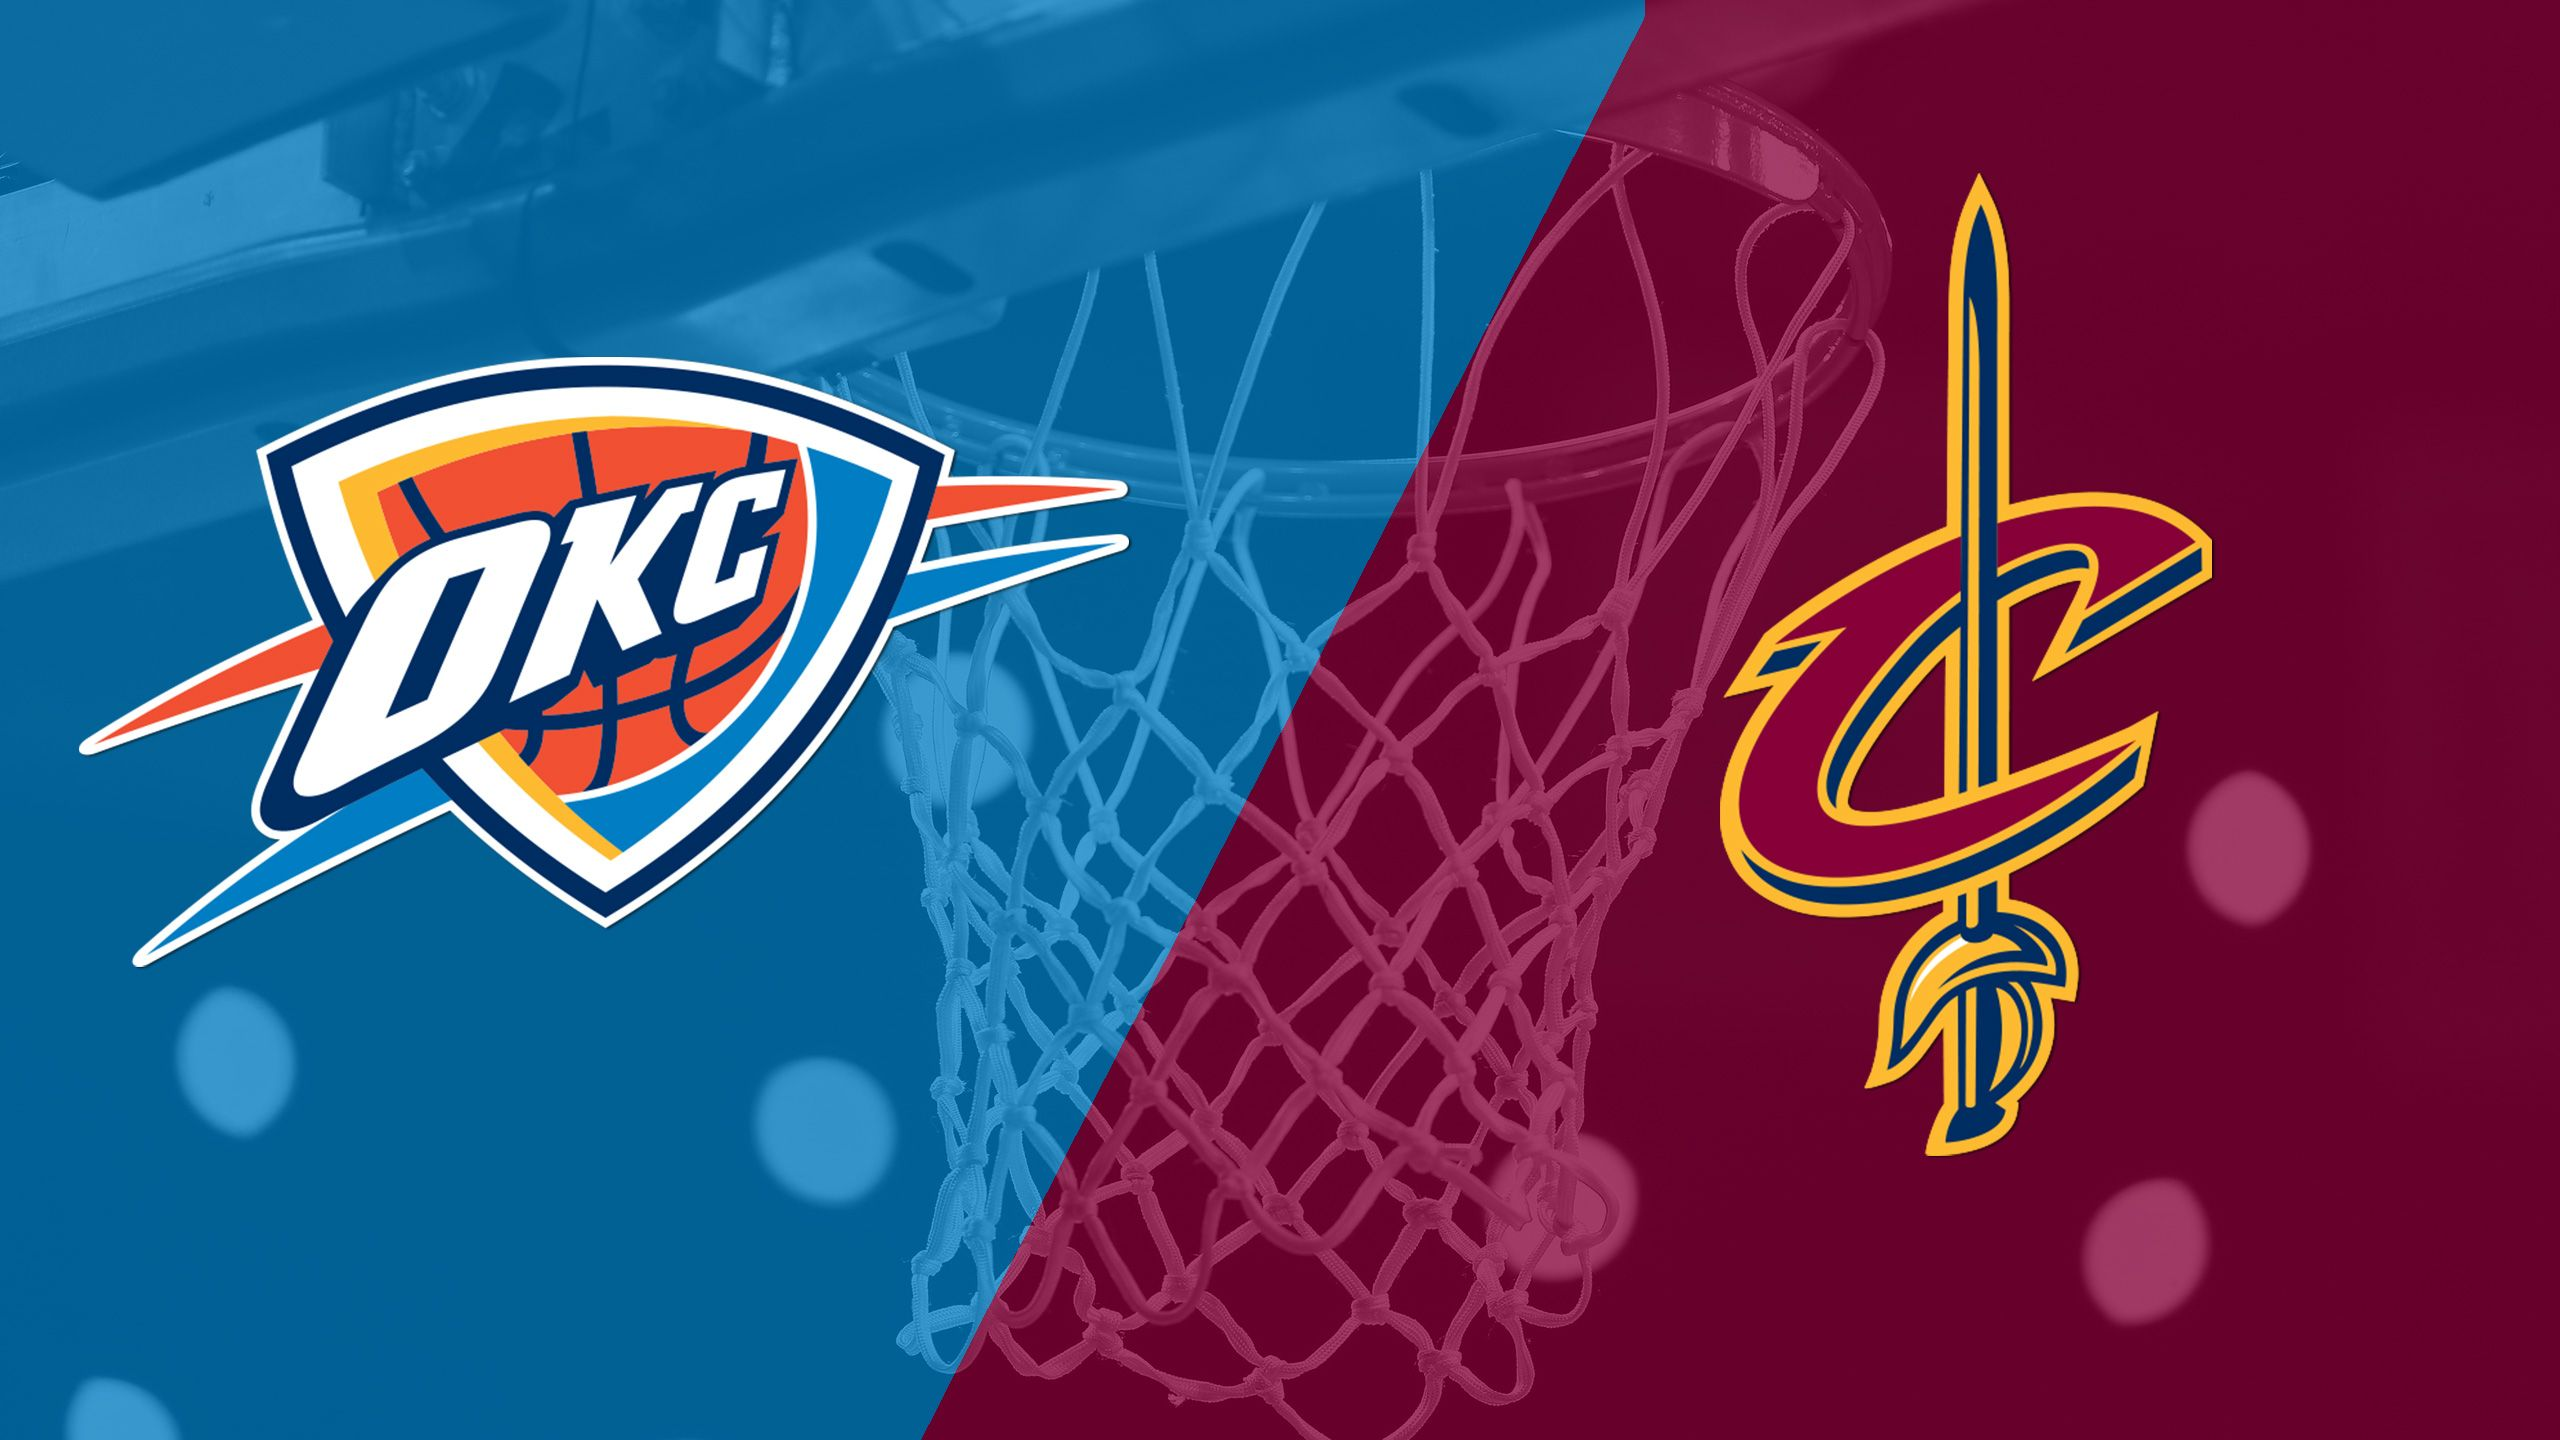 In Spanish - Oklahoma City Thunder vs. Cleveland Cavaliers